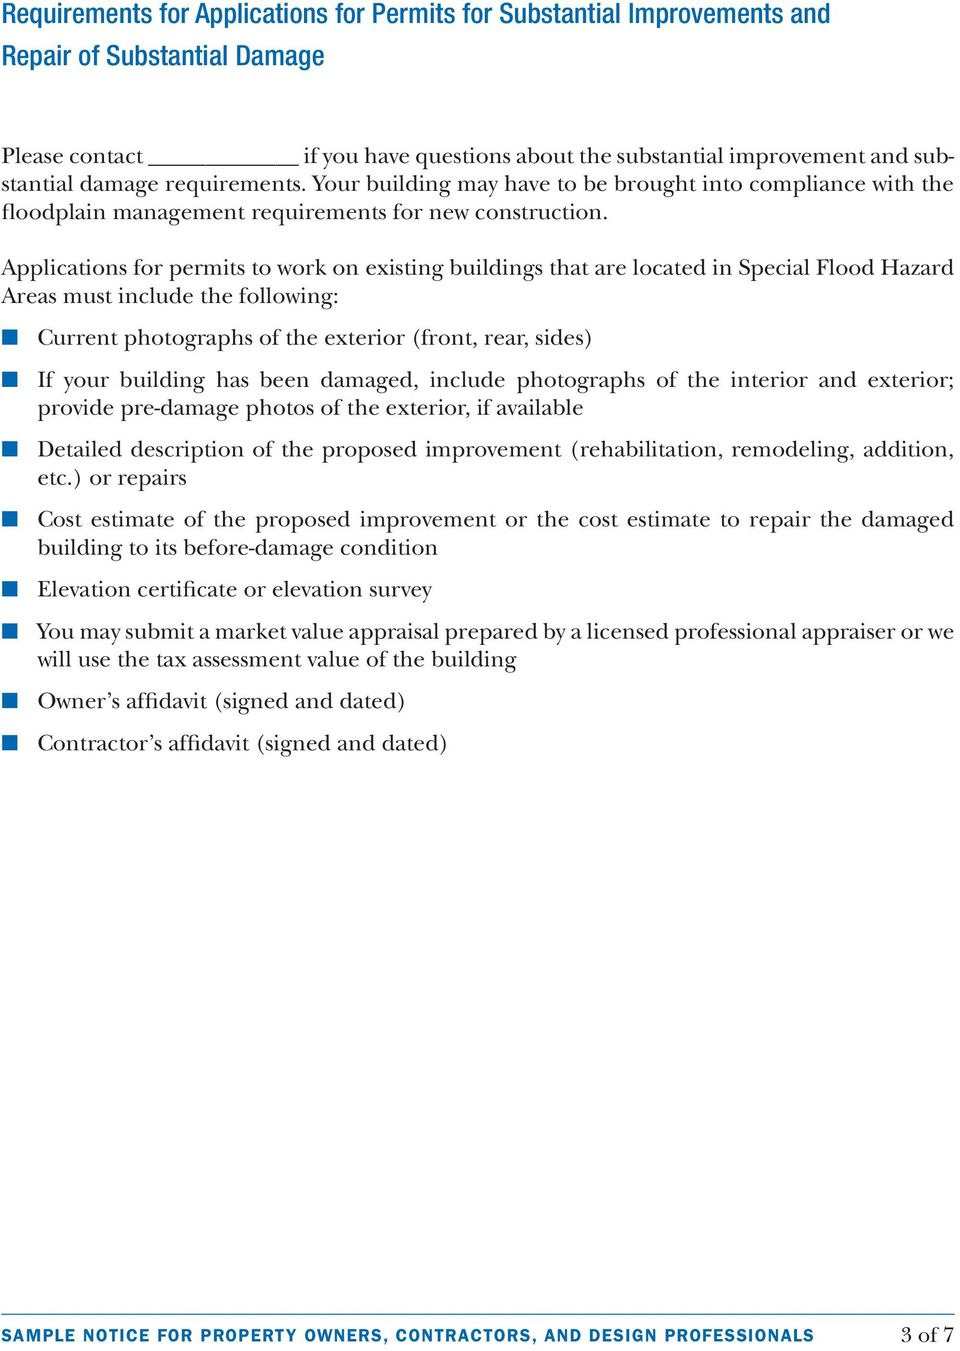 Applications for permits to work on existing buildings that are located in Special Flood Hazard Areas must include the following: n Current photographs of the exterior (front, rear, sides) n If your